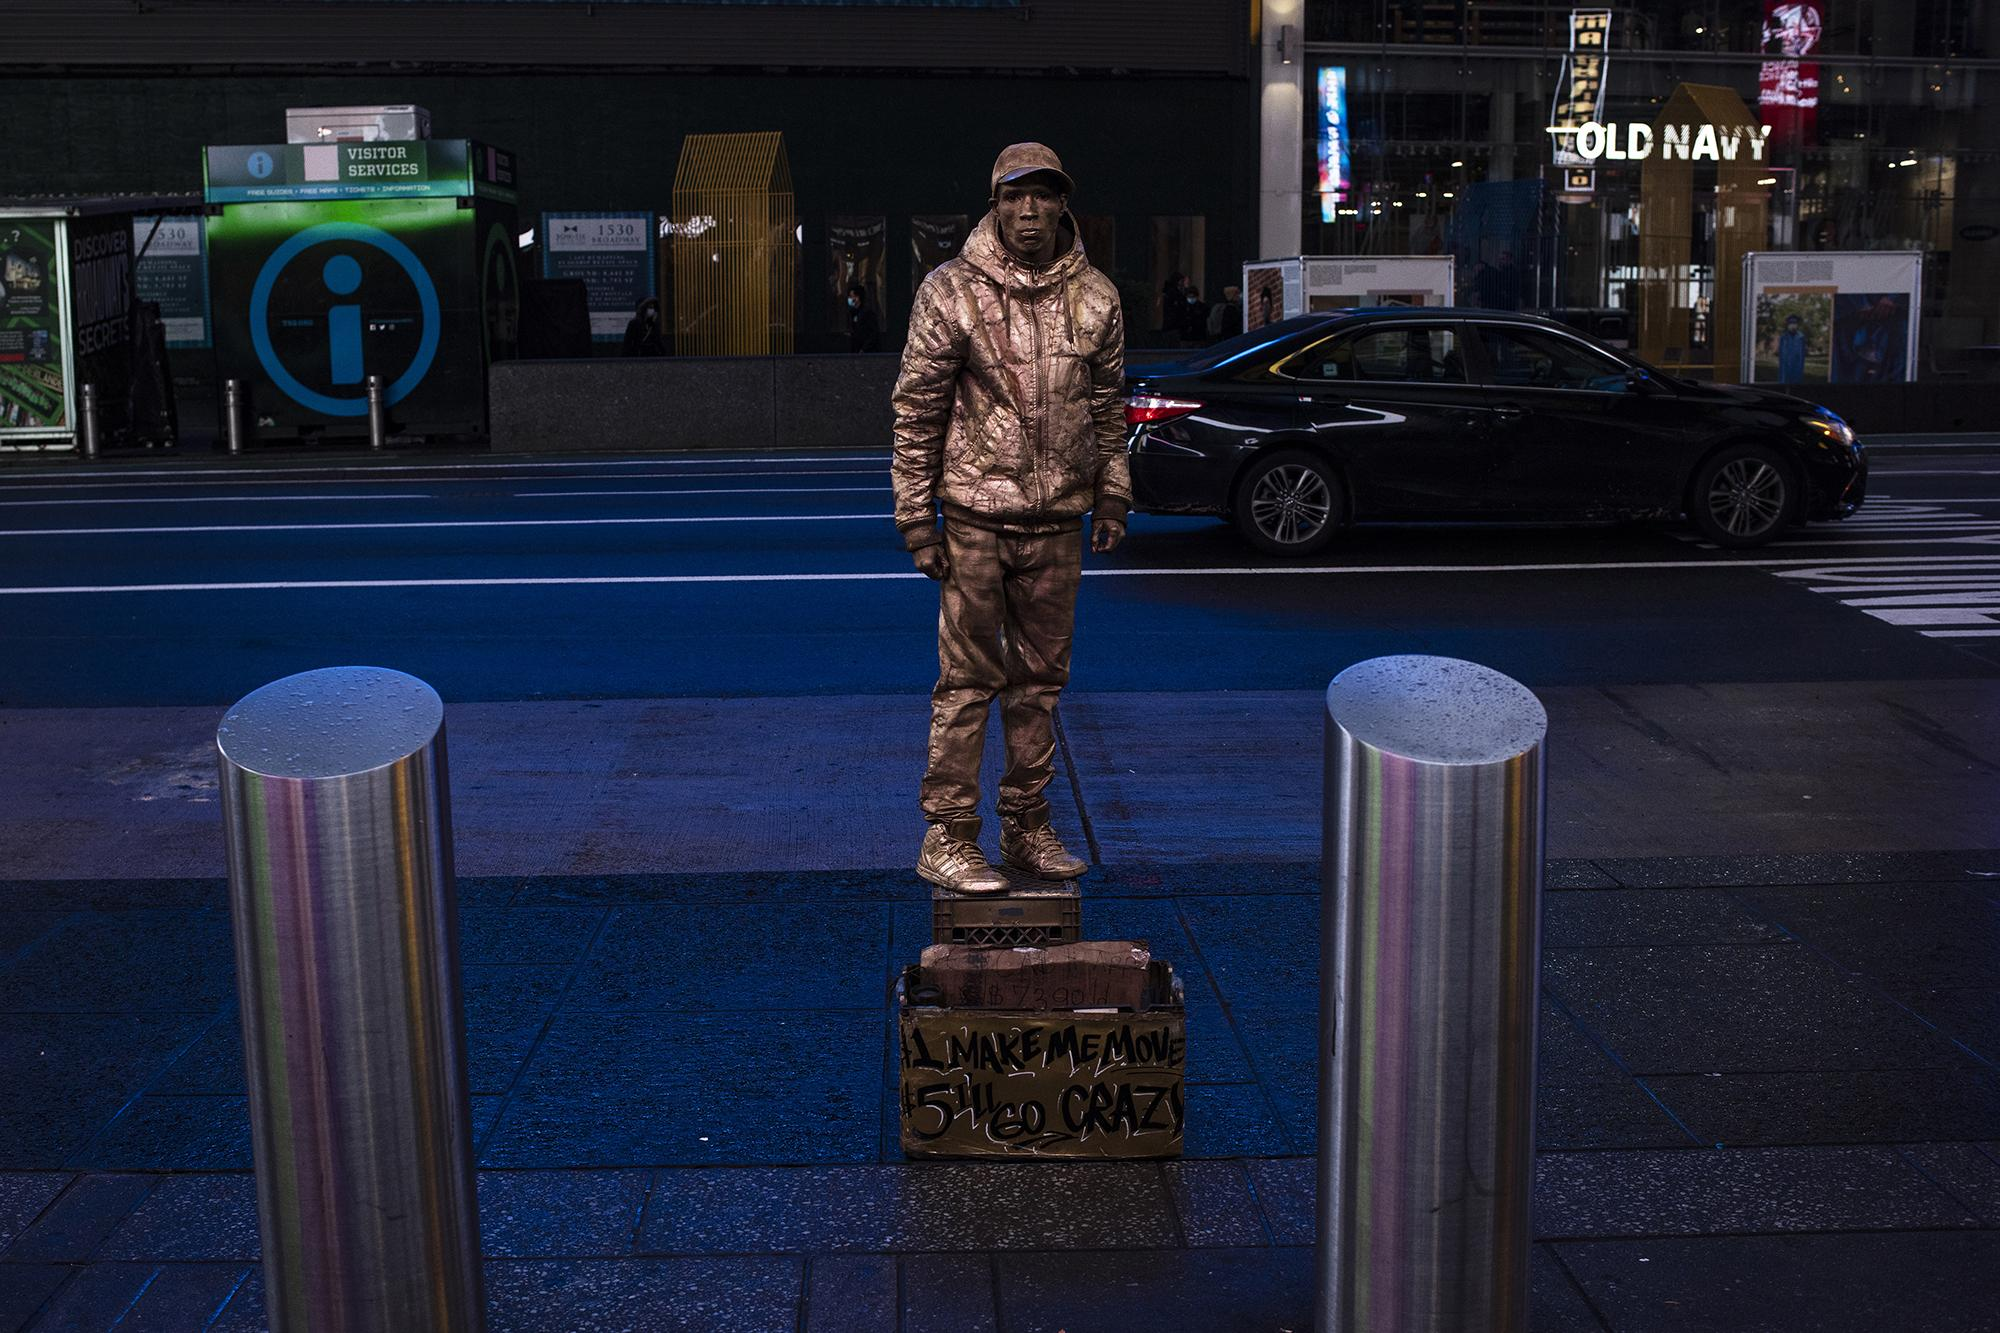 A street performance posing as a sculpture in the empty streets of Times Square on Octubre 31, 2020 in New York City.